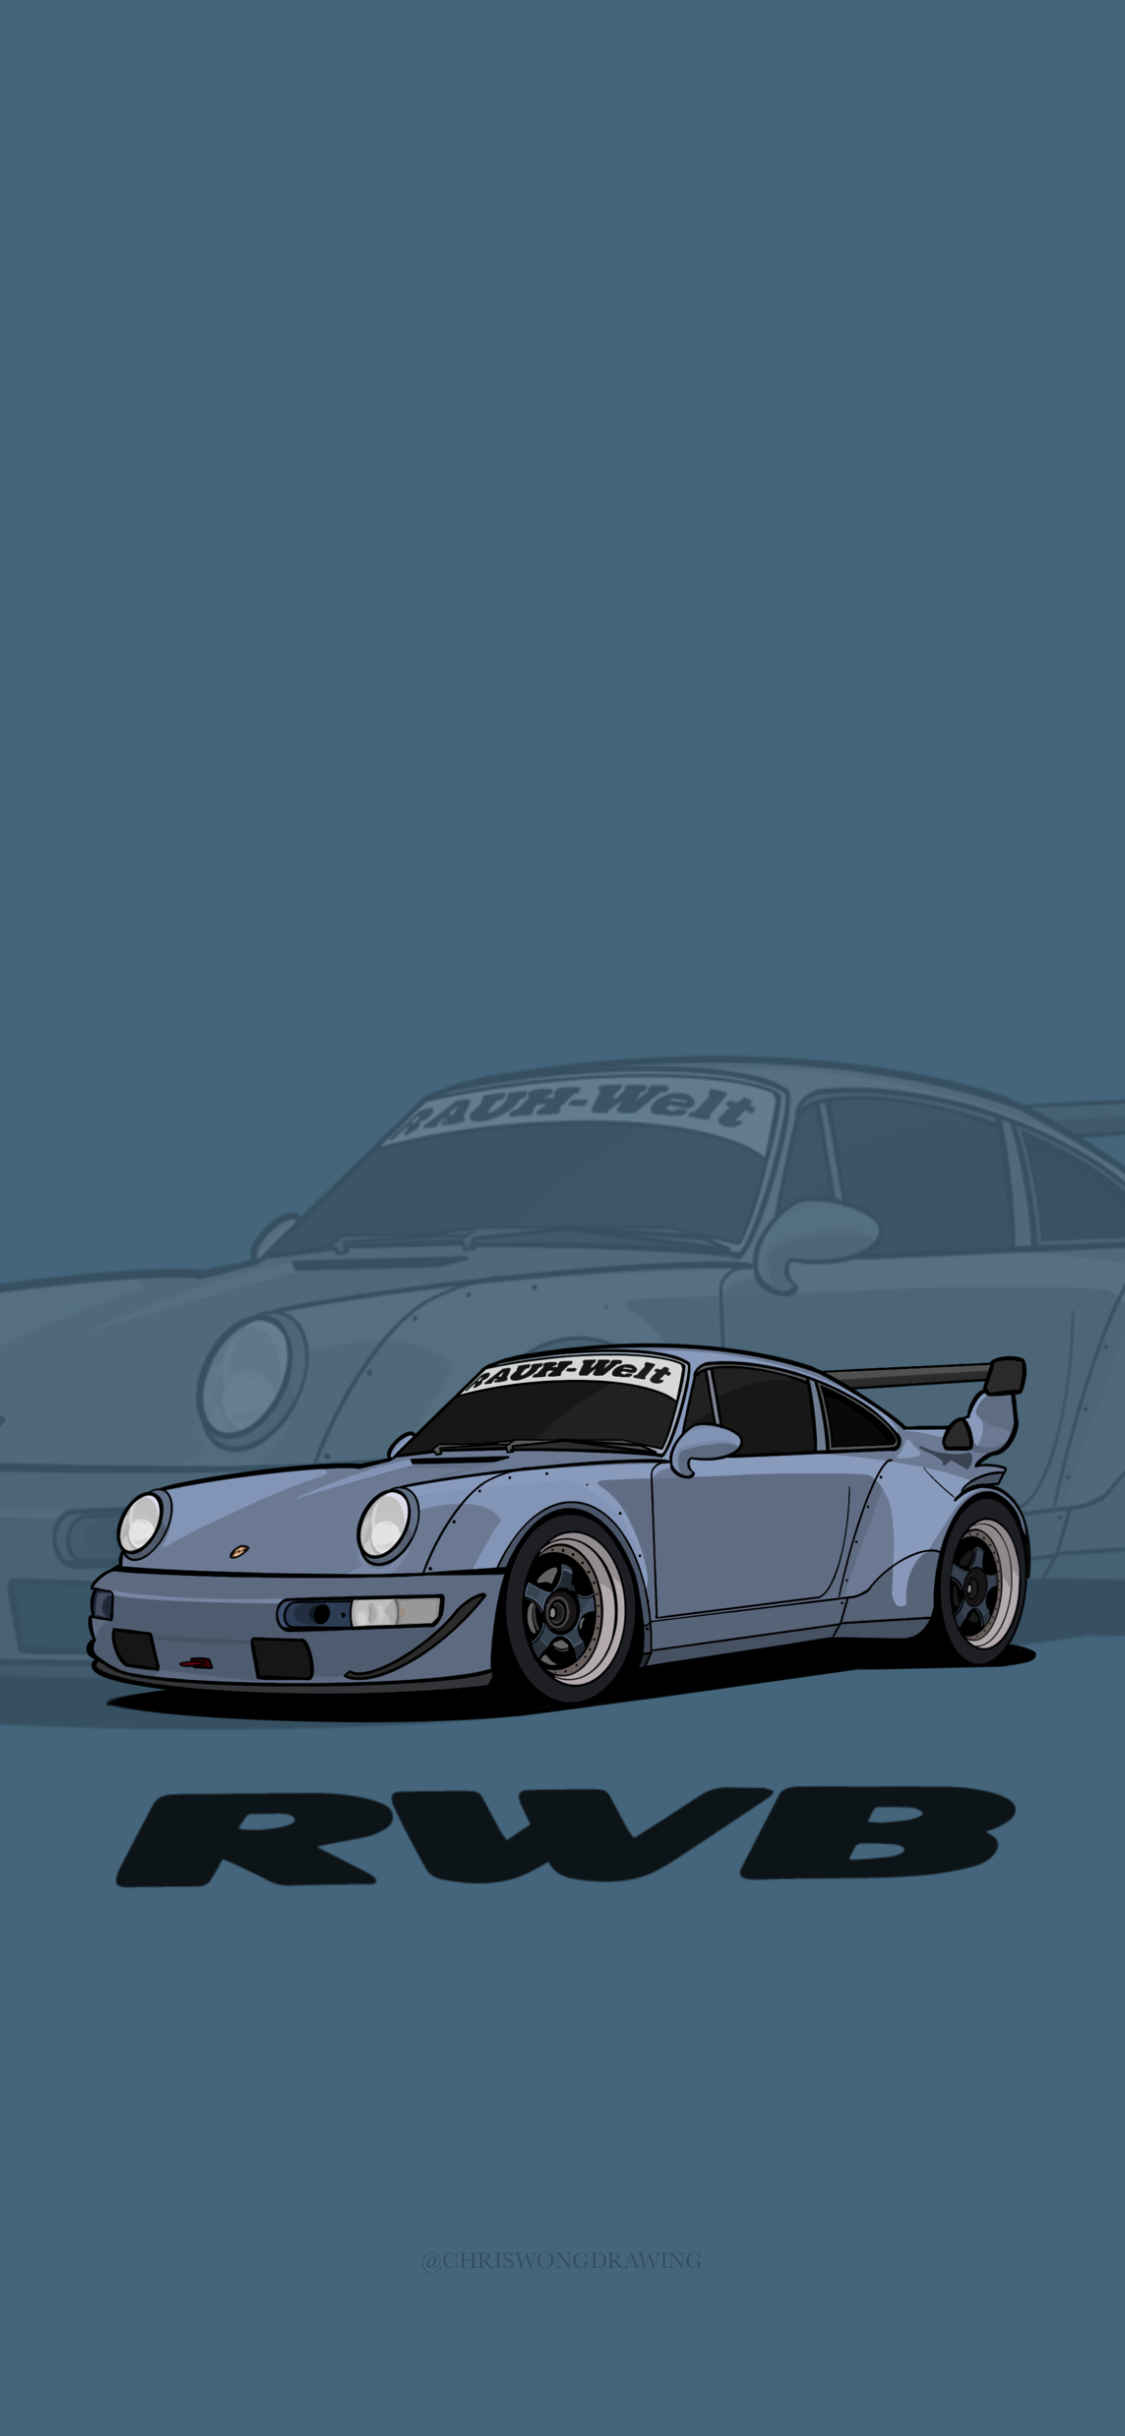 RWB Porsche iphone Wallpaper HD in 2020 Car iphone wallpaper 1125x2436